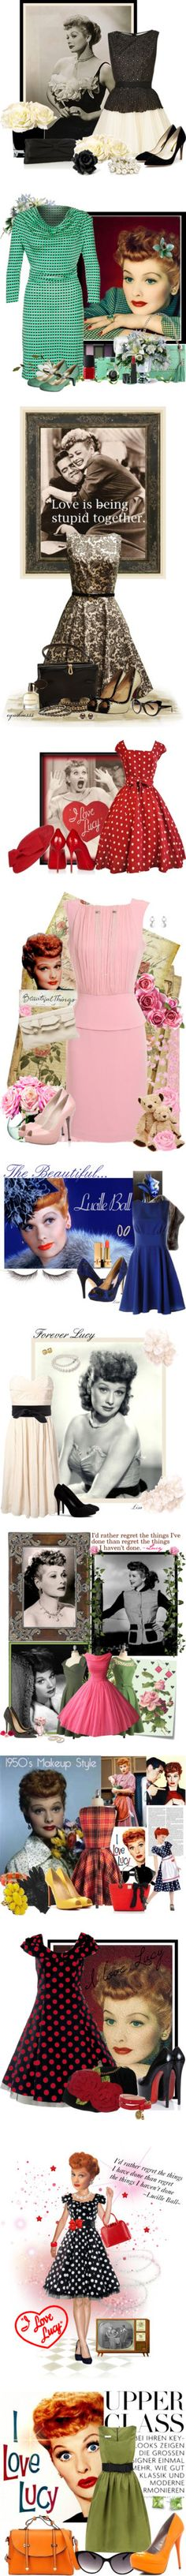 """""""I Love Lucy"""" outfits...I LOVE The off-shoulder pink one towards the bottom. They had the best style back then."""